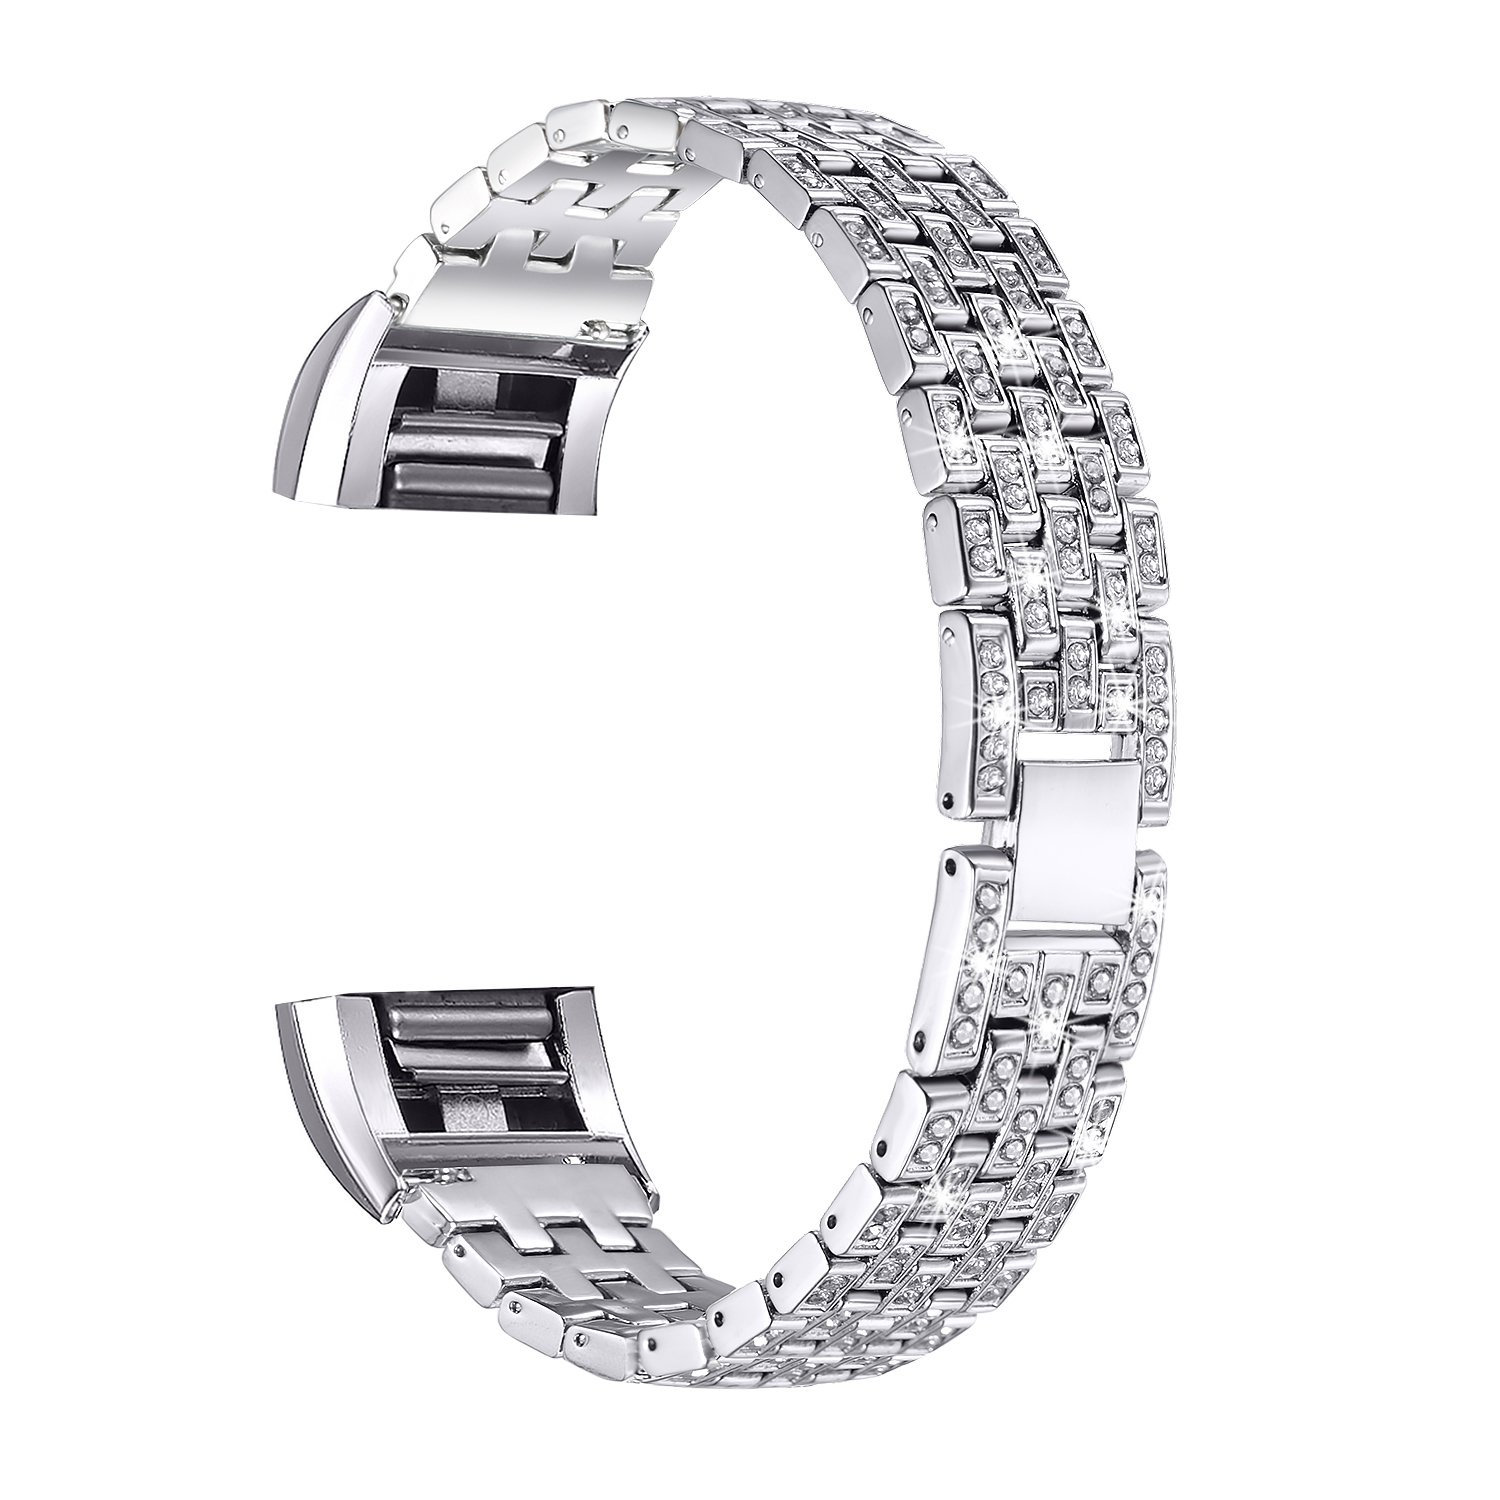 bayite Replacement Bands for Fitbit Charge 2 Bracelet Metal Silver Bling Bands for Fitbit Charge 2 with Rhinestone